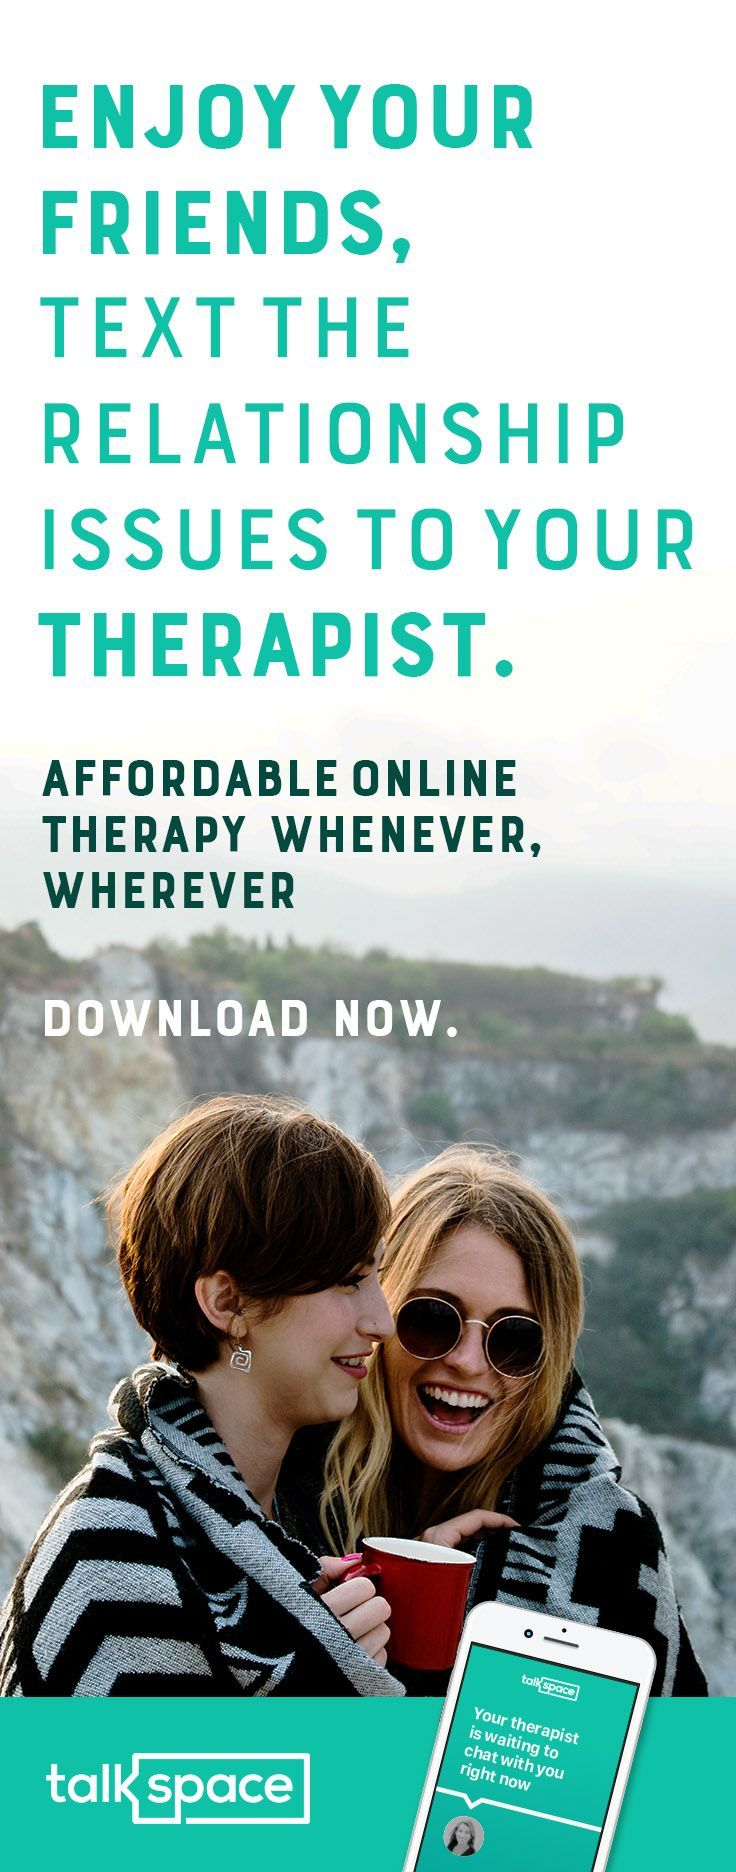 Affordable Online Relationship Therapy w/ Video, Audio and Unlimited Messaging. Plans start at $39/Wk! Chat Online w/ a Licensed Professional Therapist & learn how to reach your relationship goals now! Whether you need love advice, couples counseling, are struggling with your marriage, suffering from a broken heart, think your spouse is cheating, going through a breakup or simply need dating tips, Talkspace will match you to the perfect counselor for your needs. Download the app now!